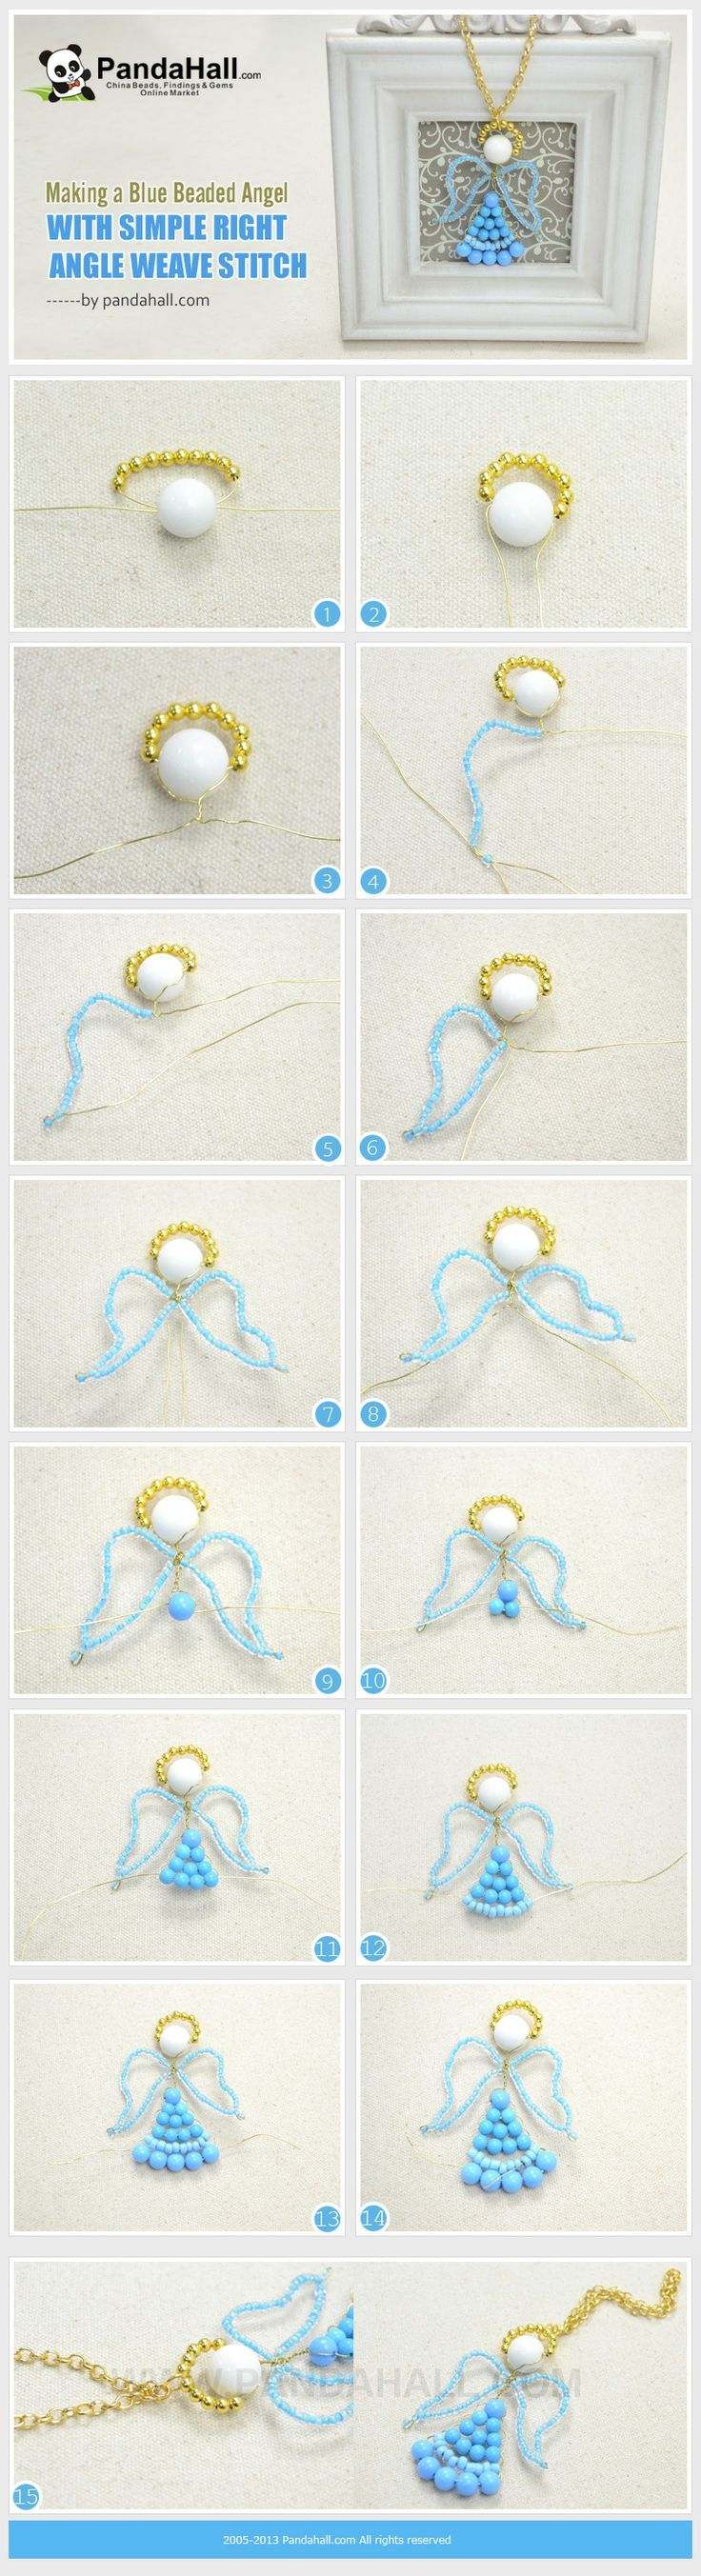 Making a Blue Beaded Angel with Simple Right Angle Weave Stitch: